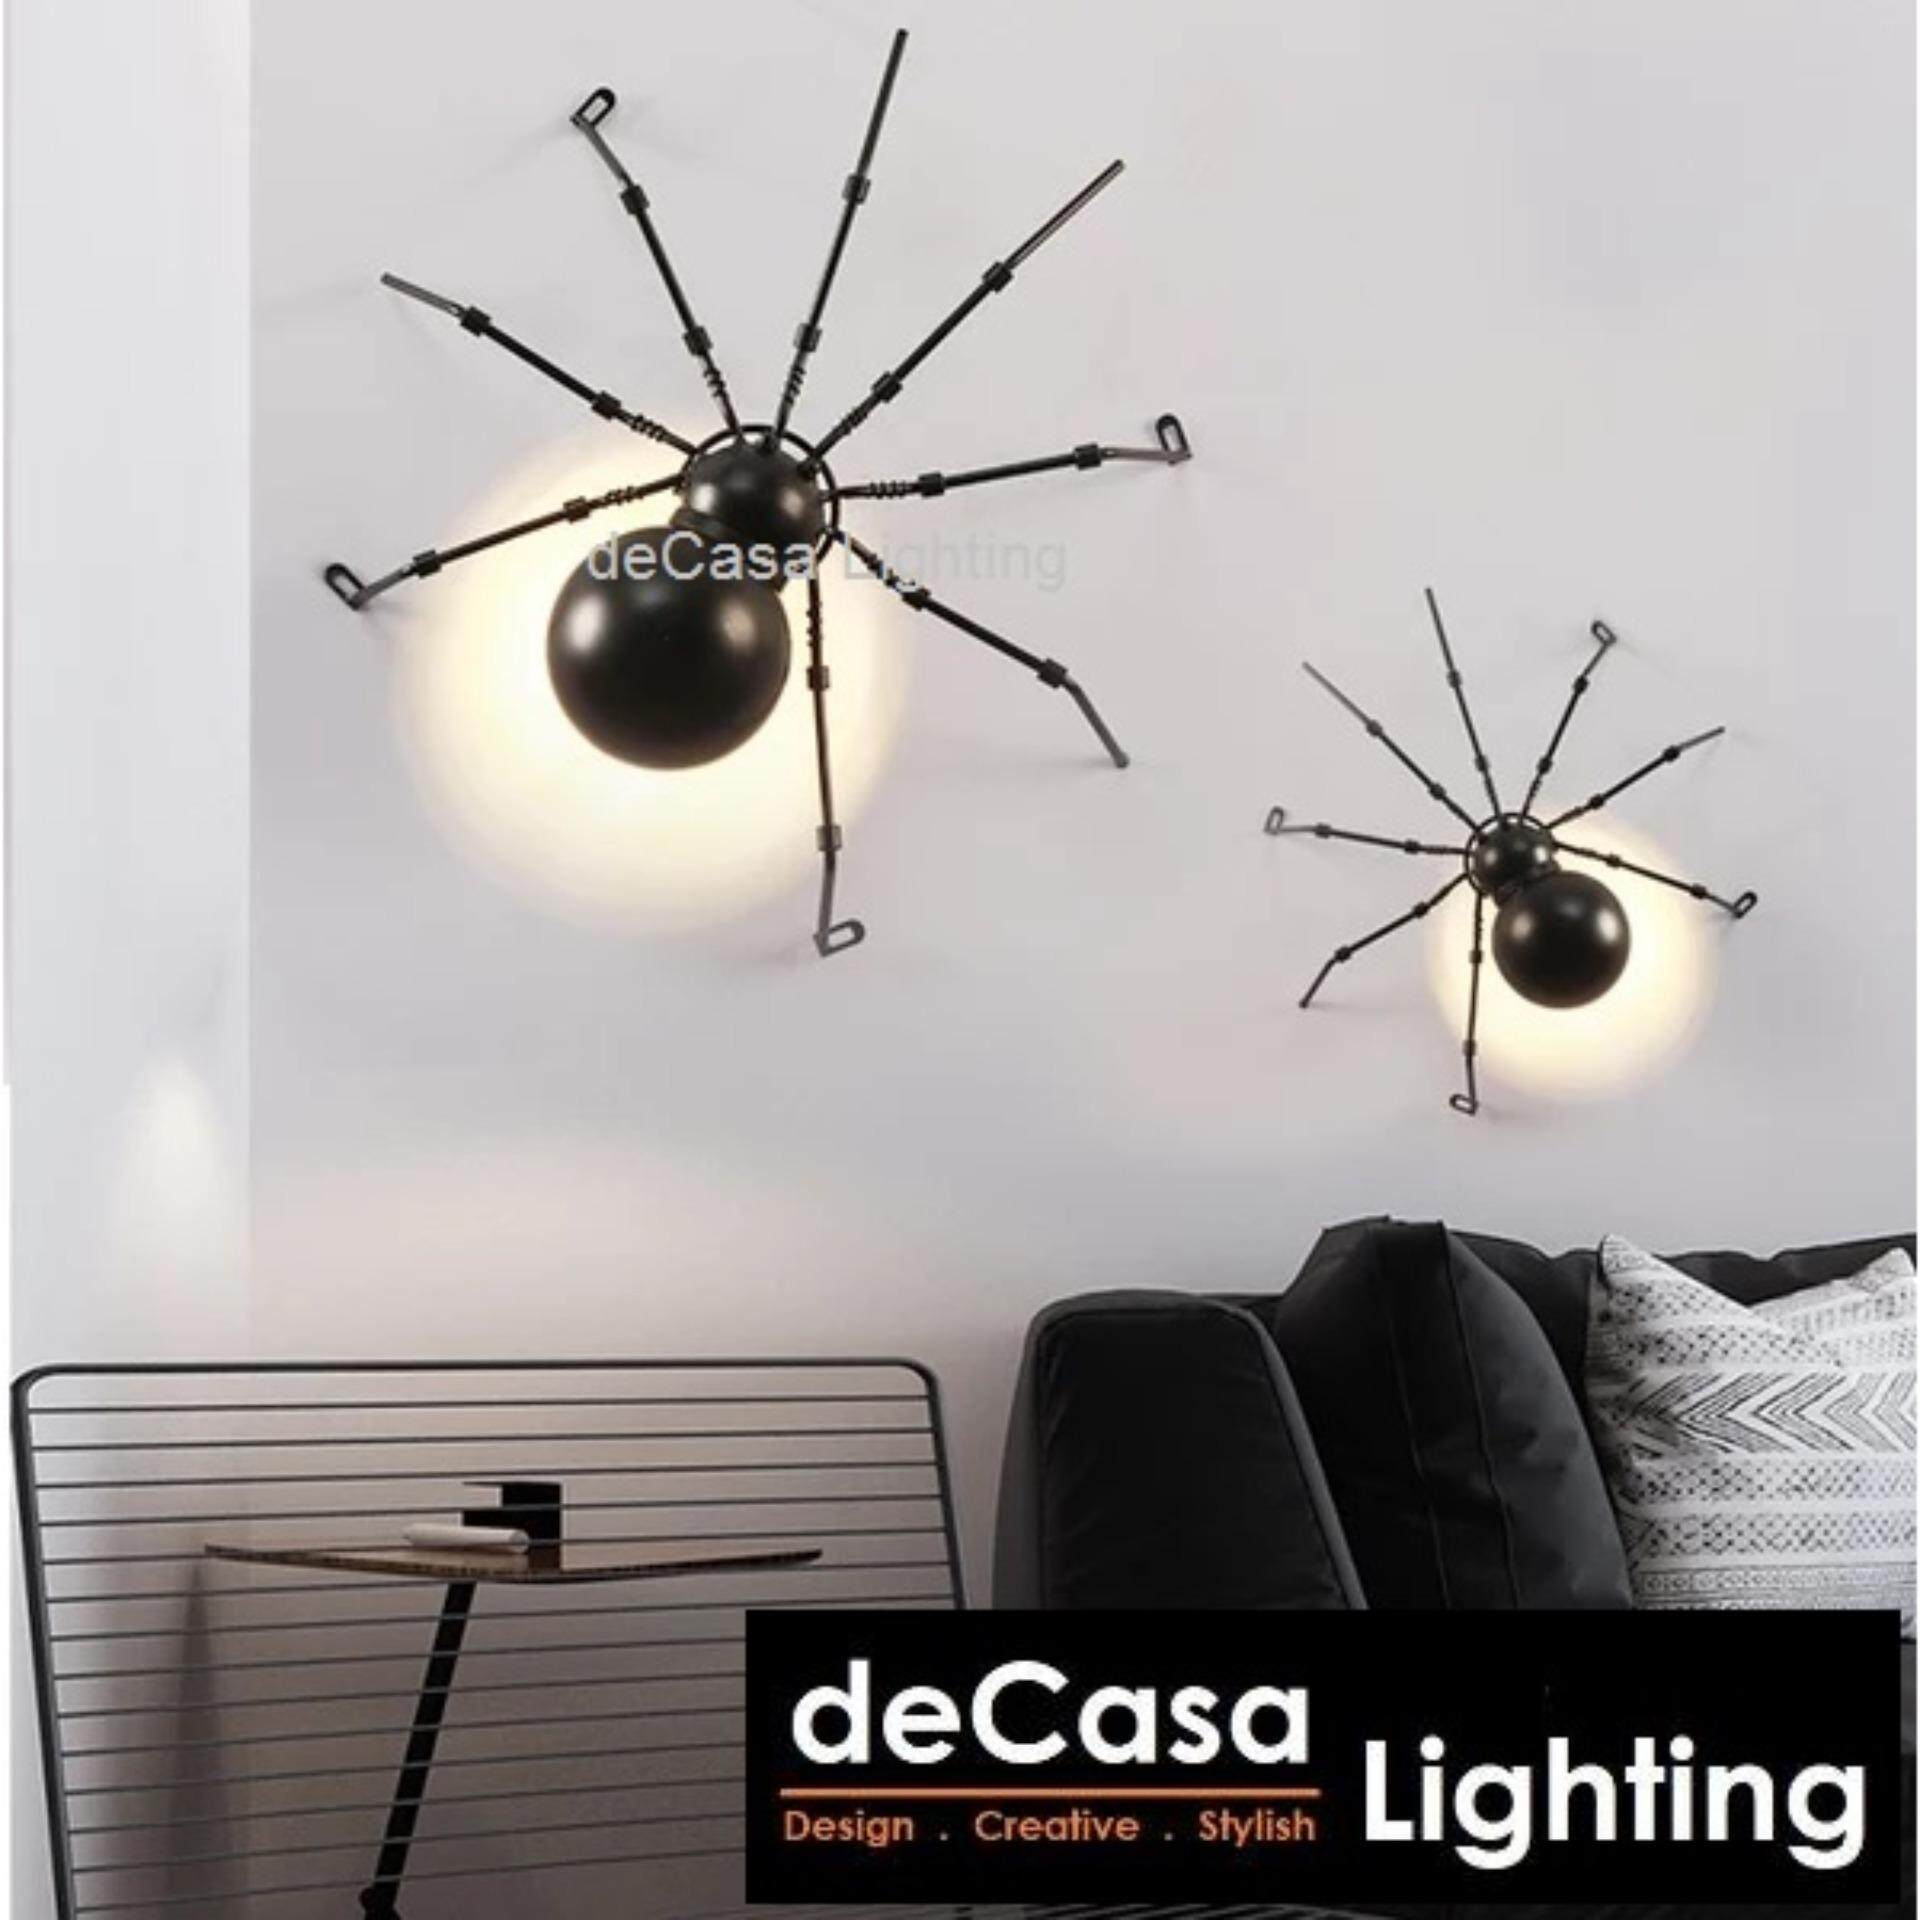 Vintage wall Lamp Loft LED Wall Light Decasa Lighting Spider wall mounted lights Bedroom decorative Lamp home lighting modern wall sconces (FP-SPIDER-WALL-M)